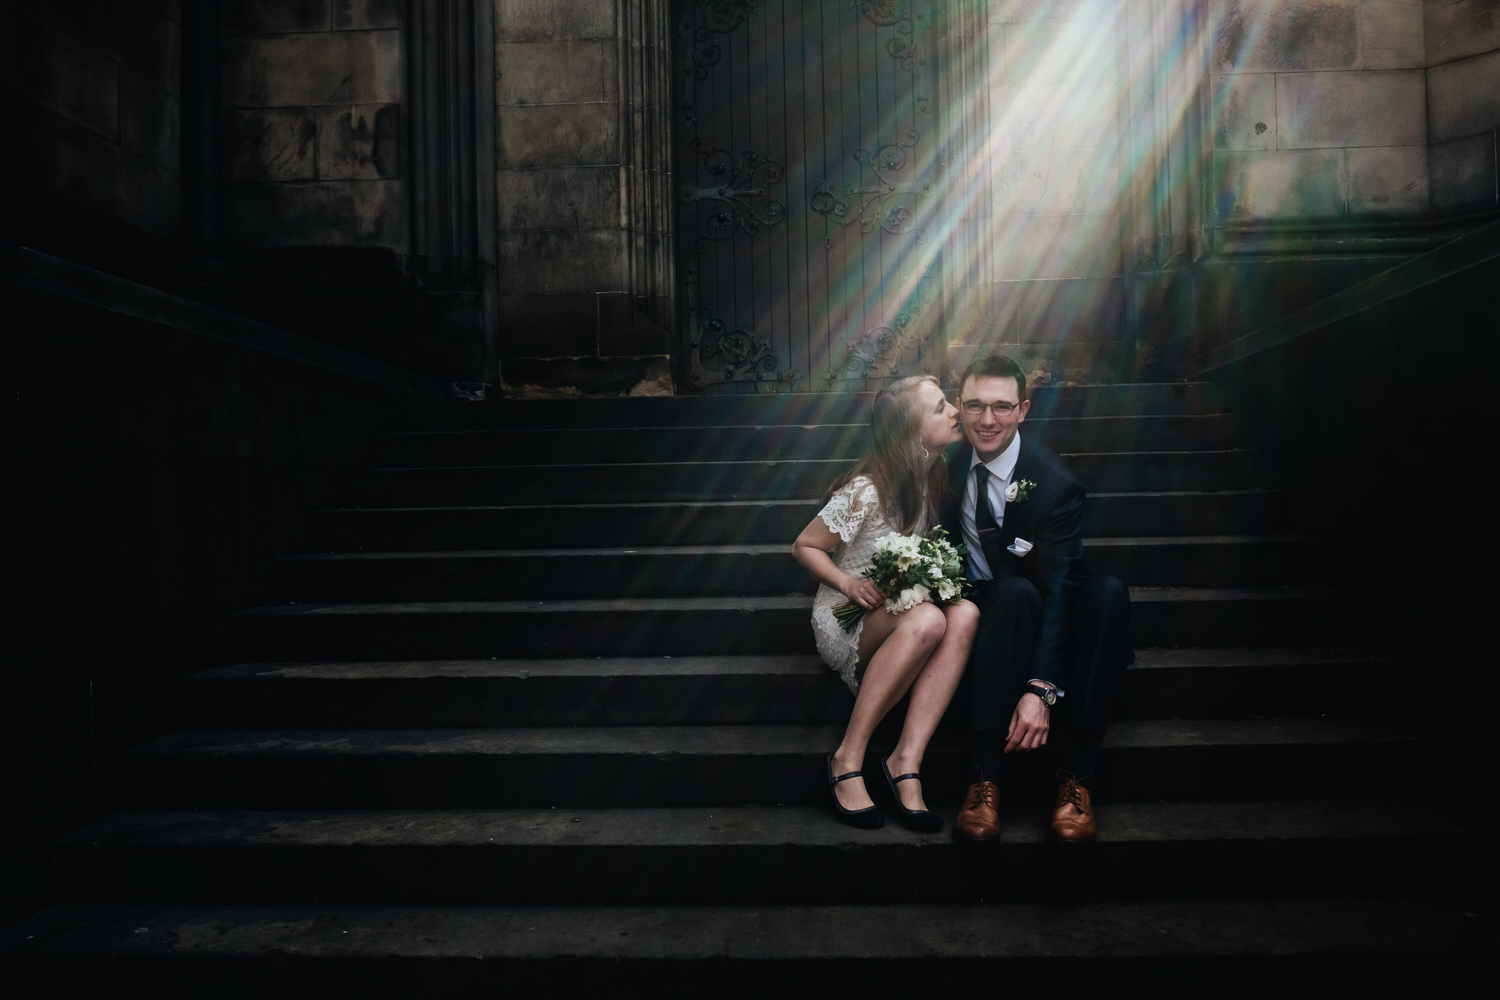 A newly eloped couple sit on stairs smiling at each other.